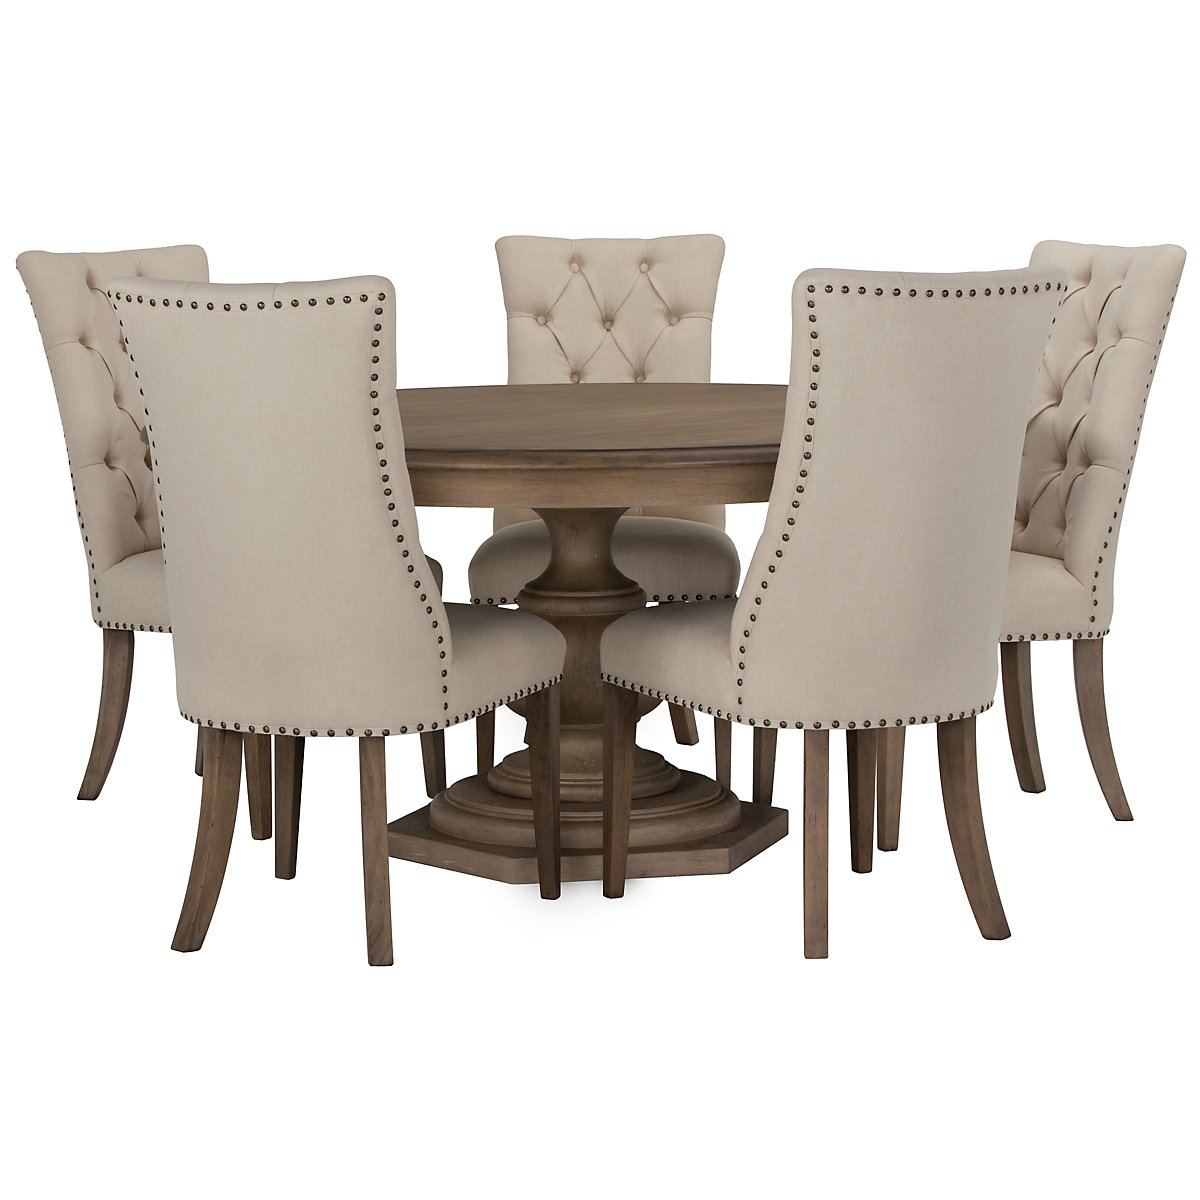 City furniture haddie light tone round table 4 for 4 chair dining table